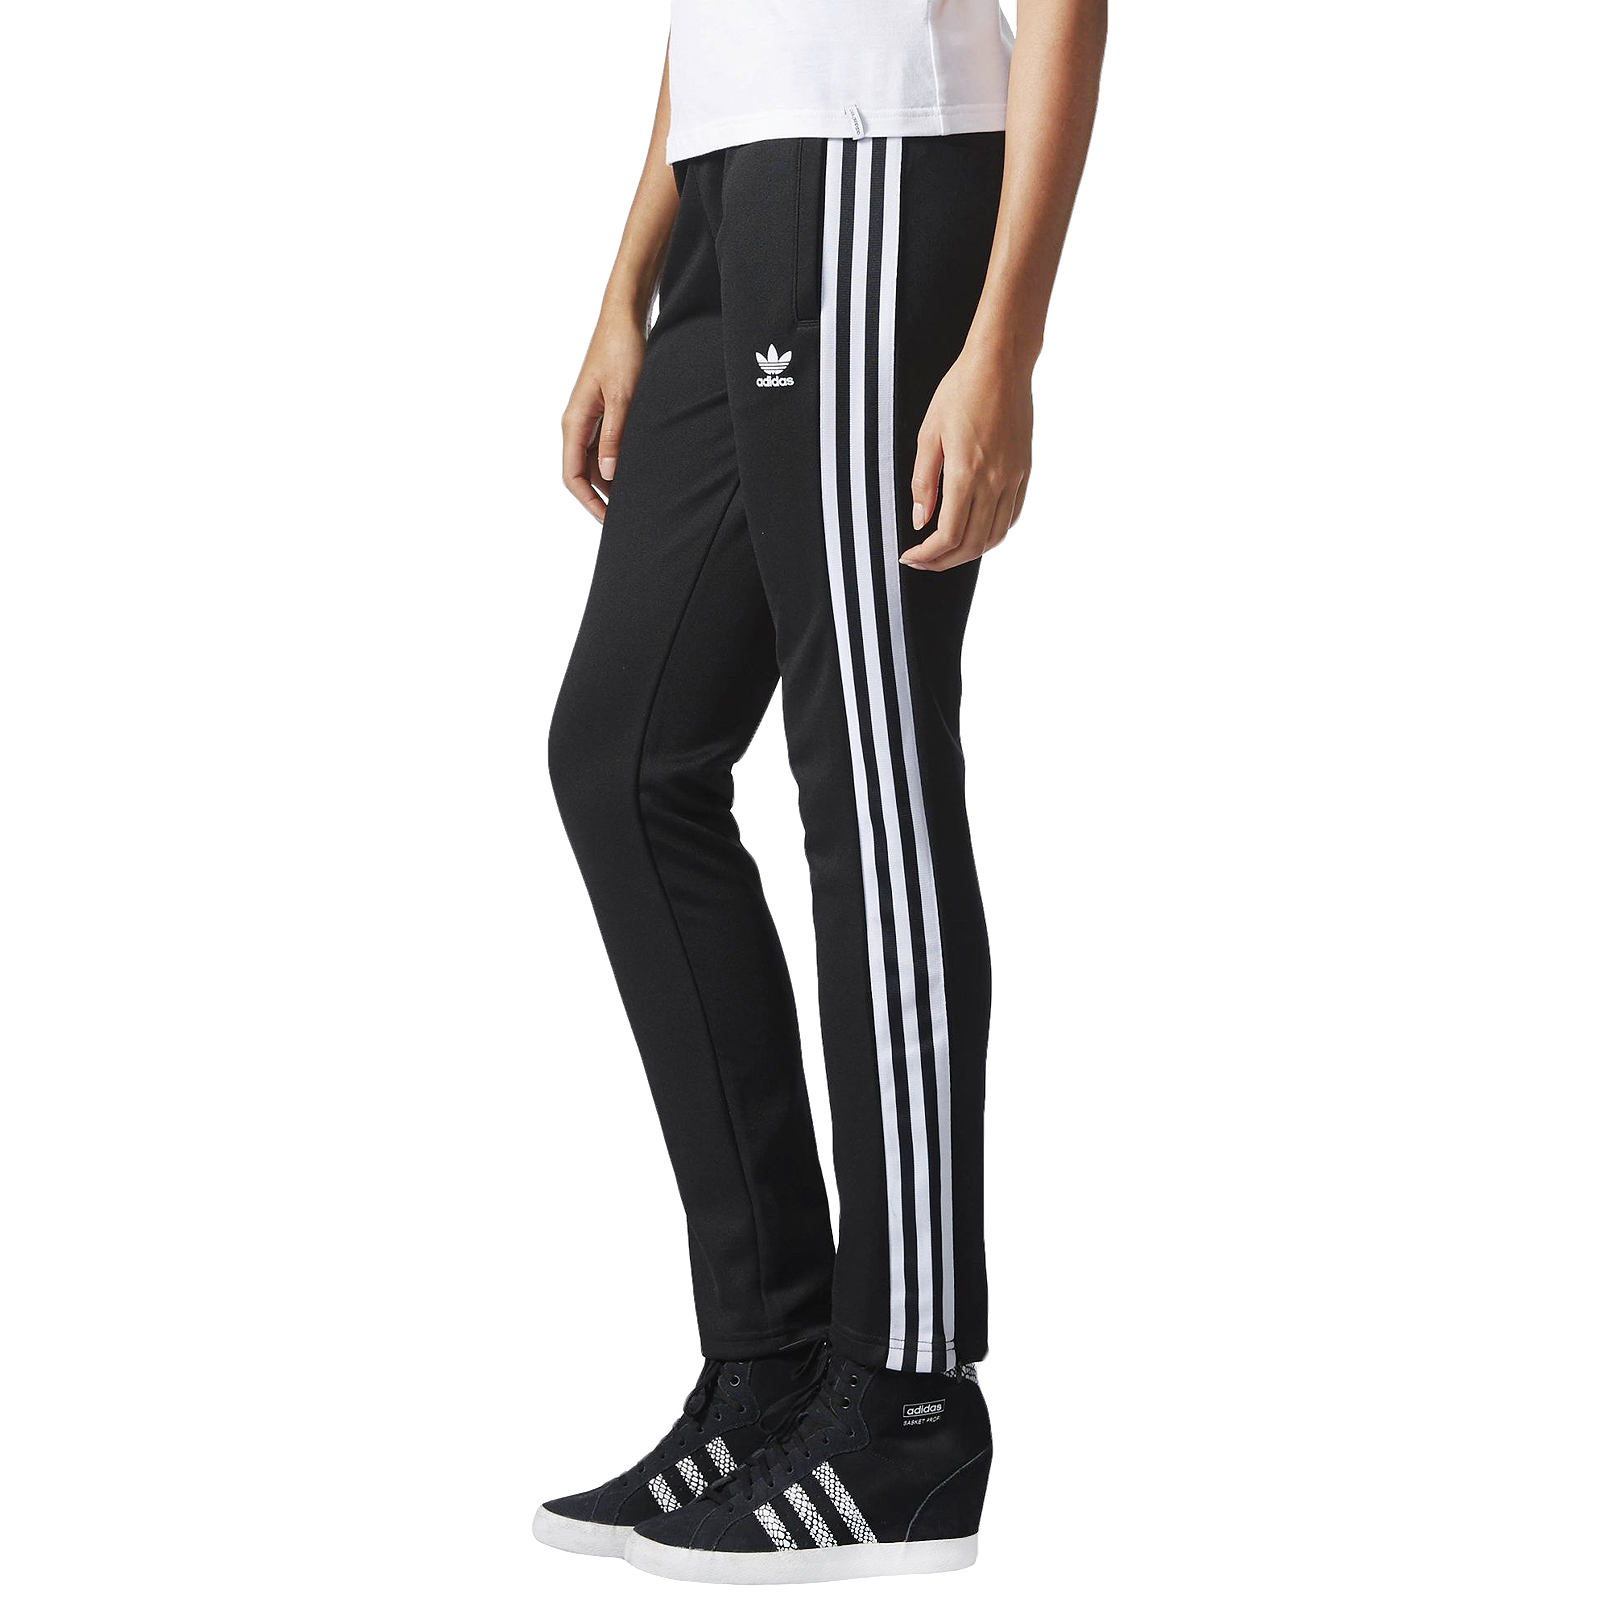 Find great deals on eBay for womens track pants. Shop with confidence.